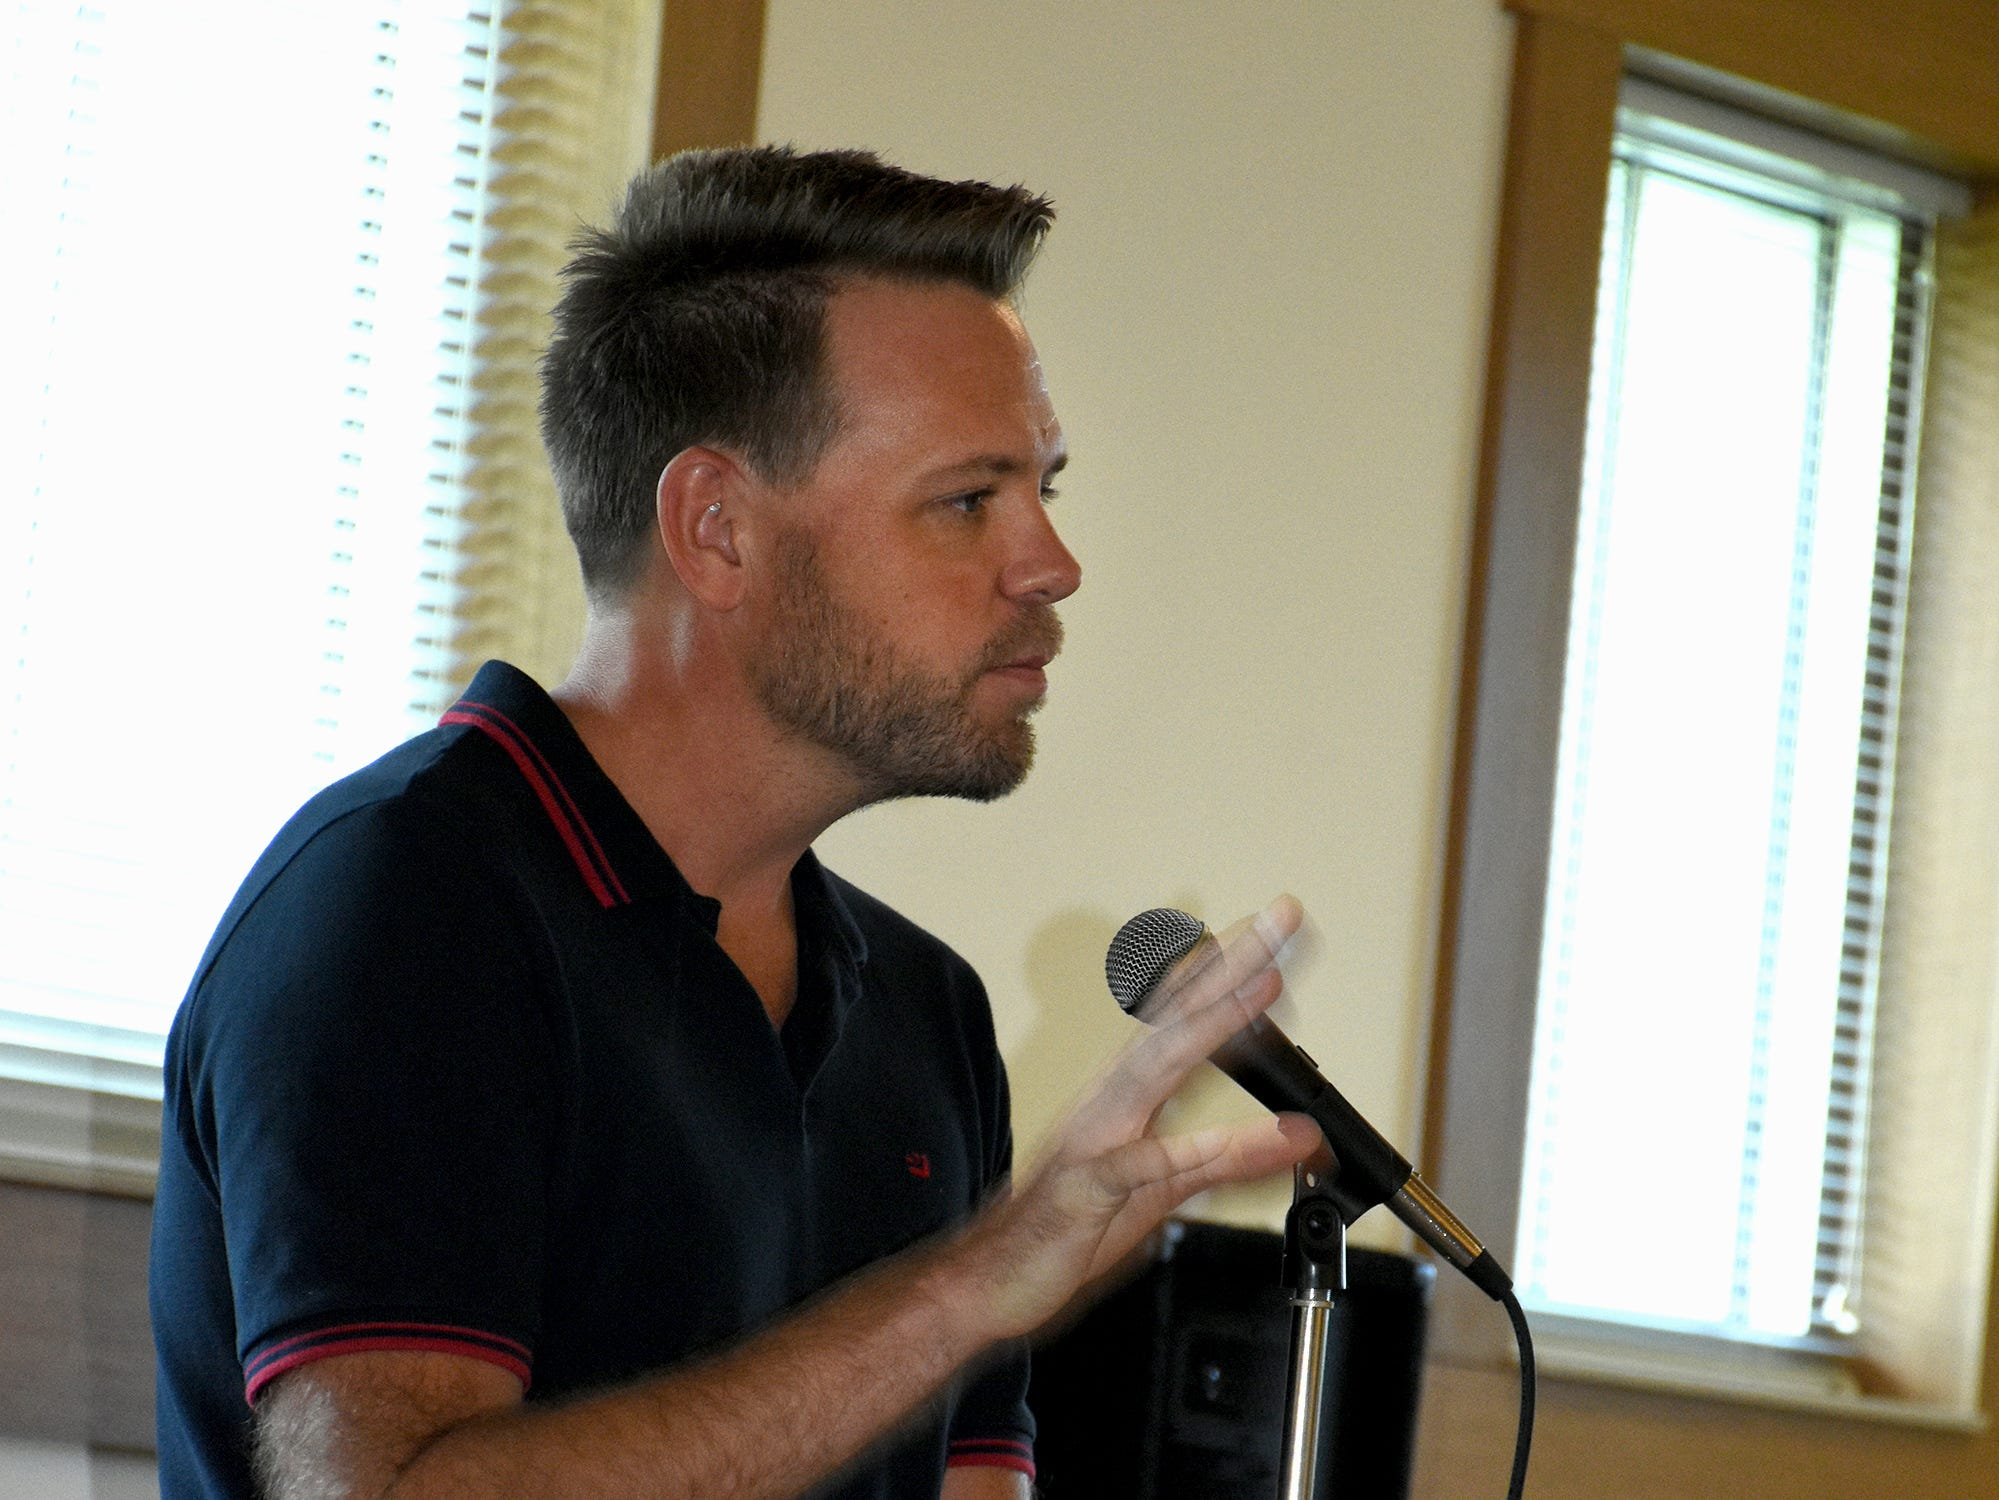 Bestselling author and FGCU professor Nathan Hill speaks. The Collier County public library system hosted an author fair Saturday at the South Regional library branch, with nearly four dozen local writers and talks from two eminent authors.